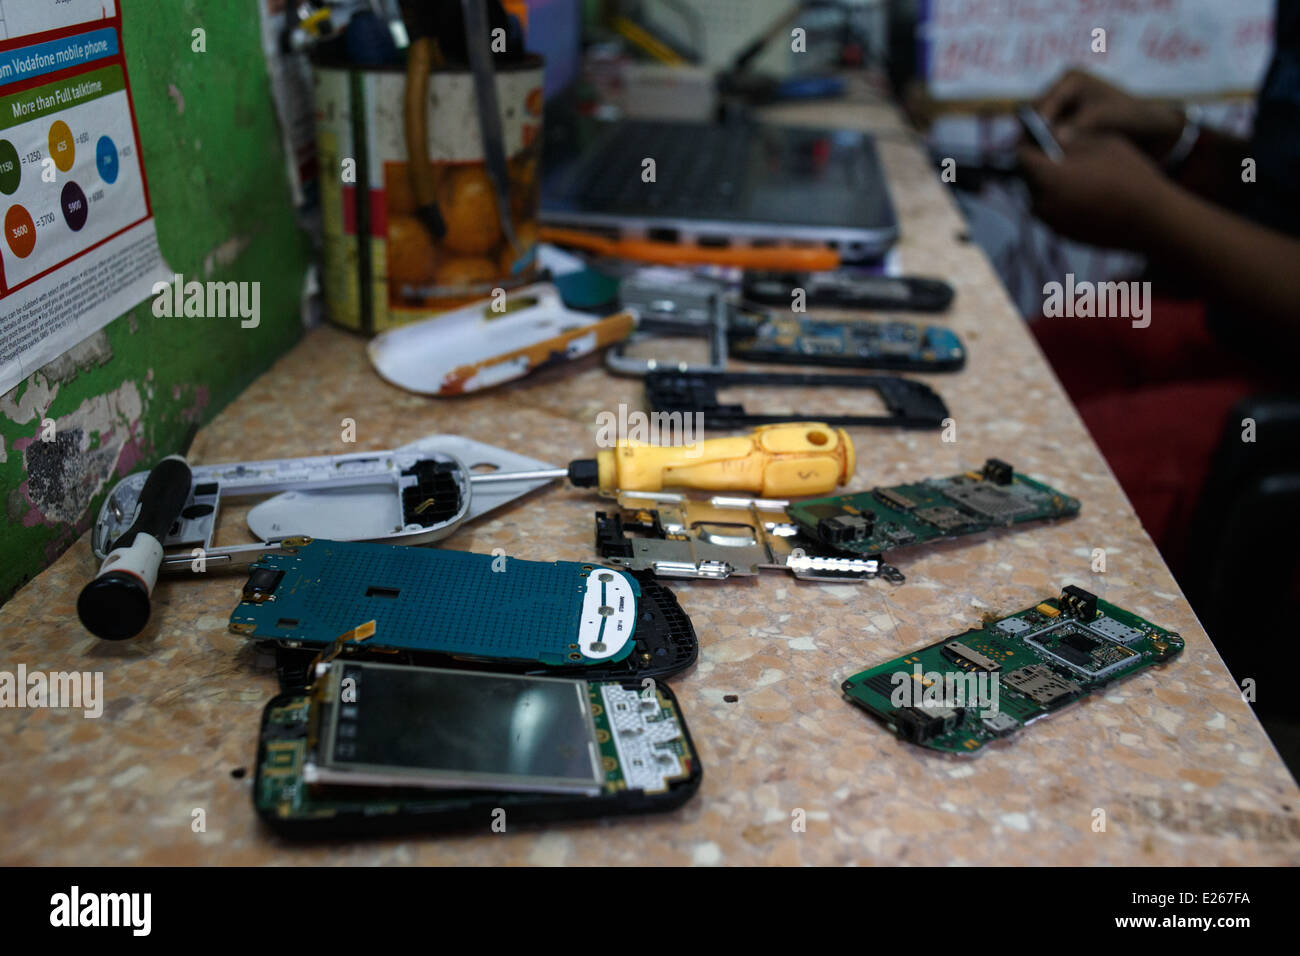 A mobile phone (cellphone) shop and repair workshop in Mumbai, India. - Stock Image